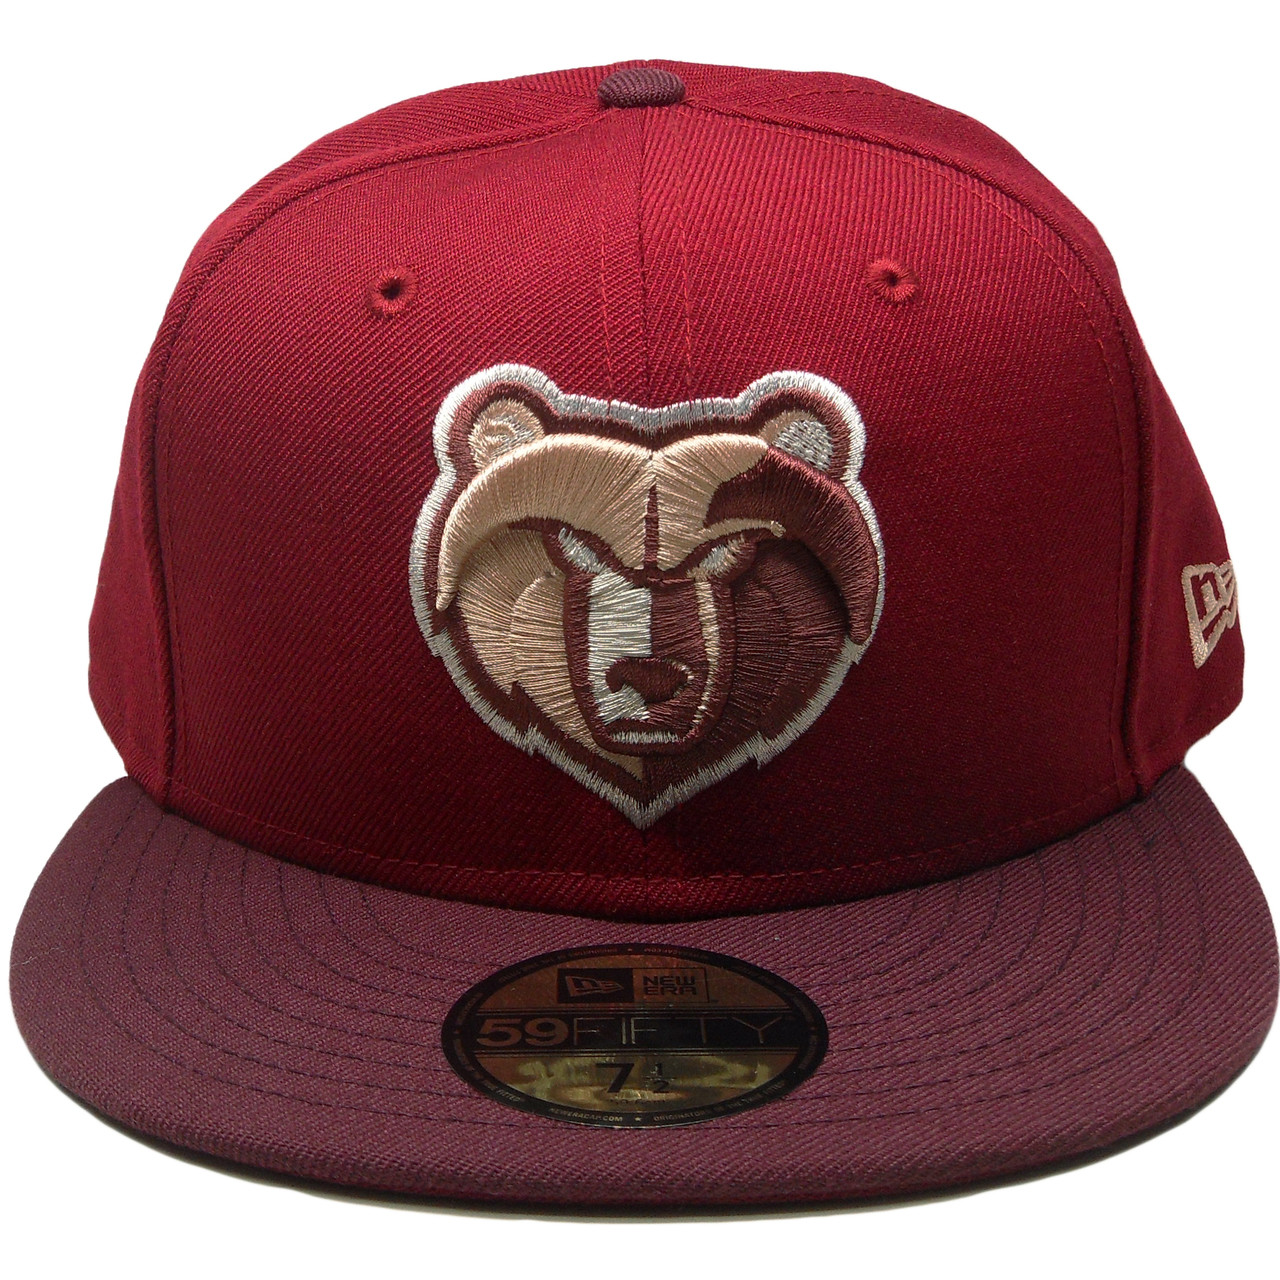 Memphis Grizzlies New Era Custom 59Fifty Fitted - Burgundy 52fc1ce206f